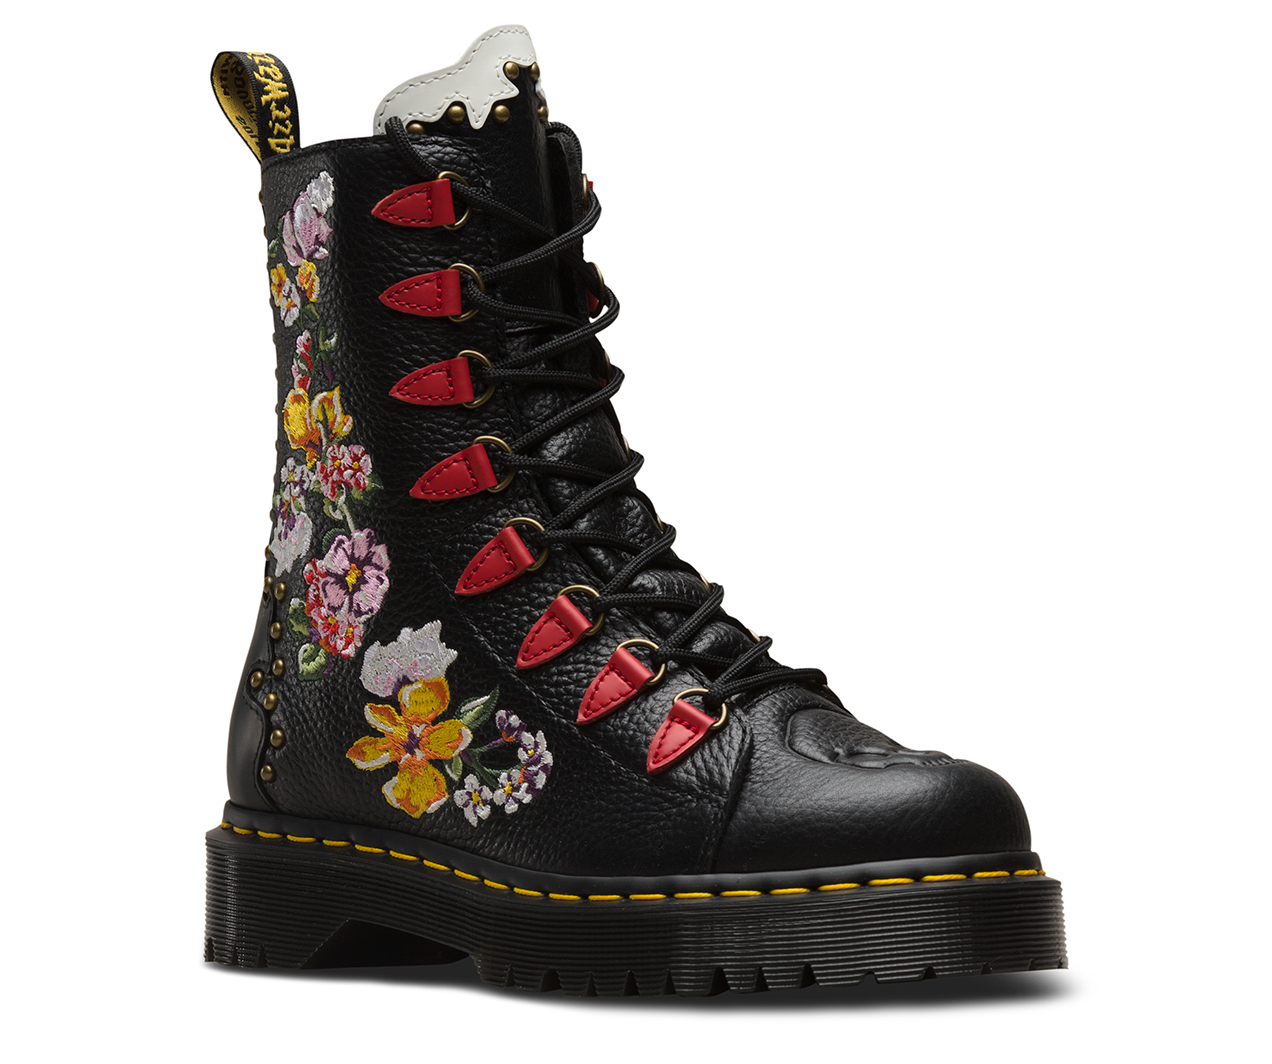 Nyberg Women S Boots Shoes Amp Sandals Dr Martens Official